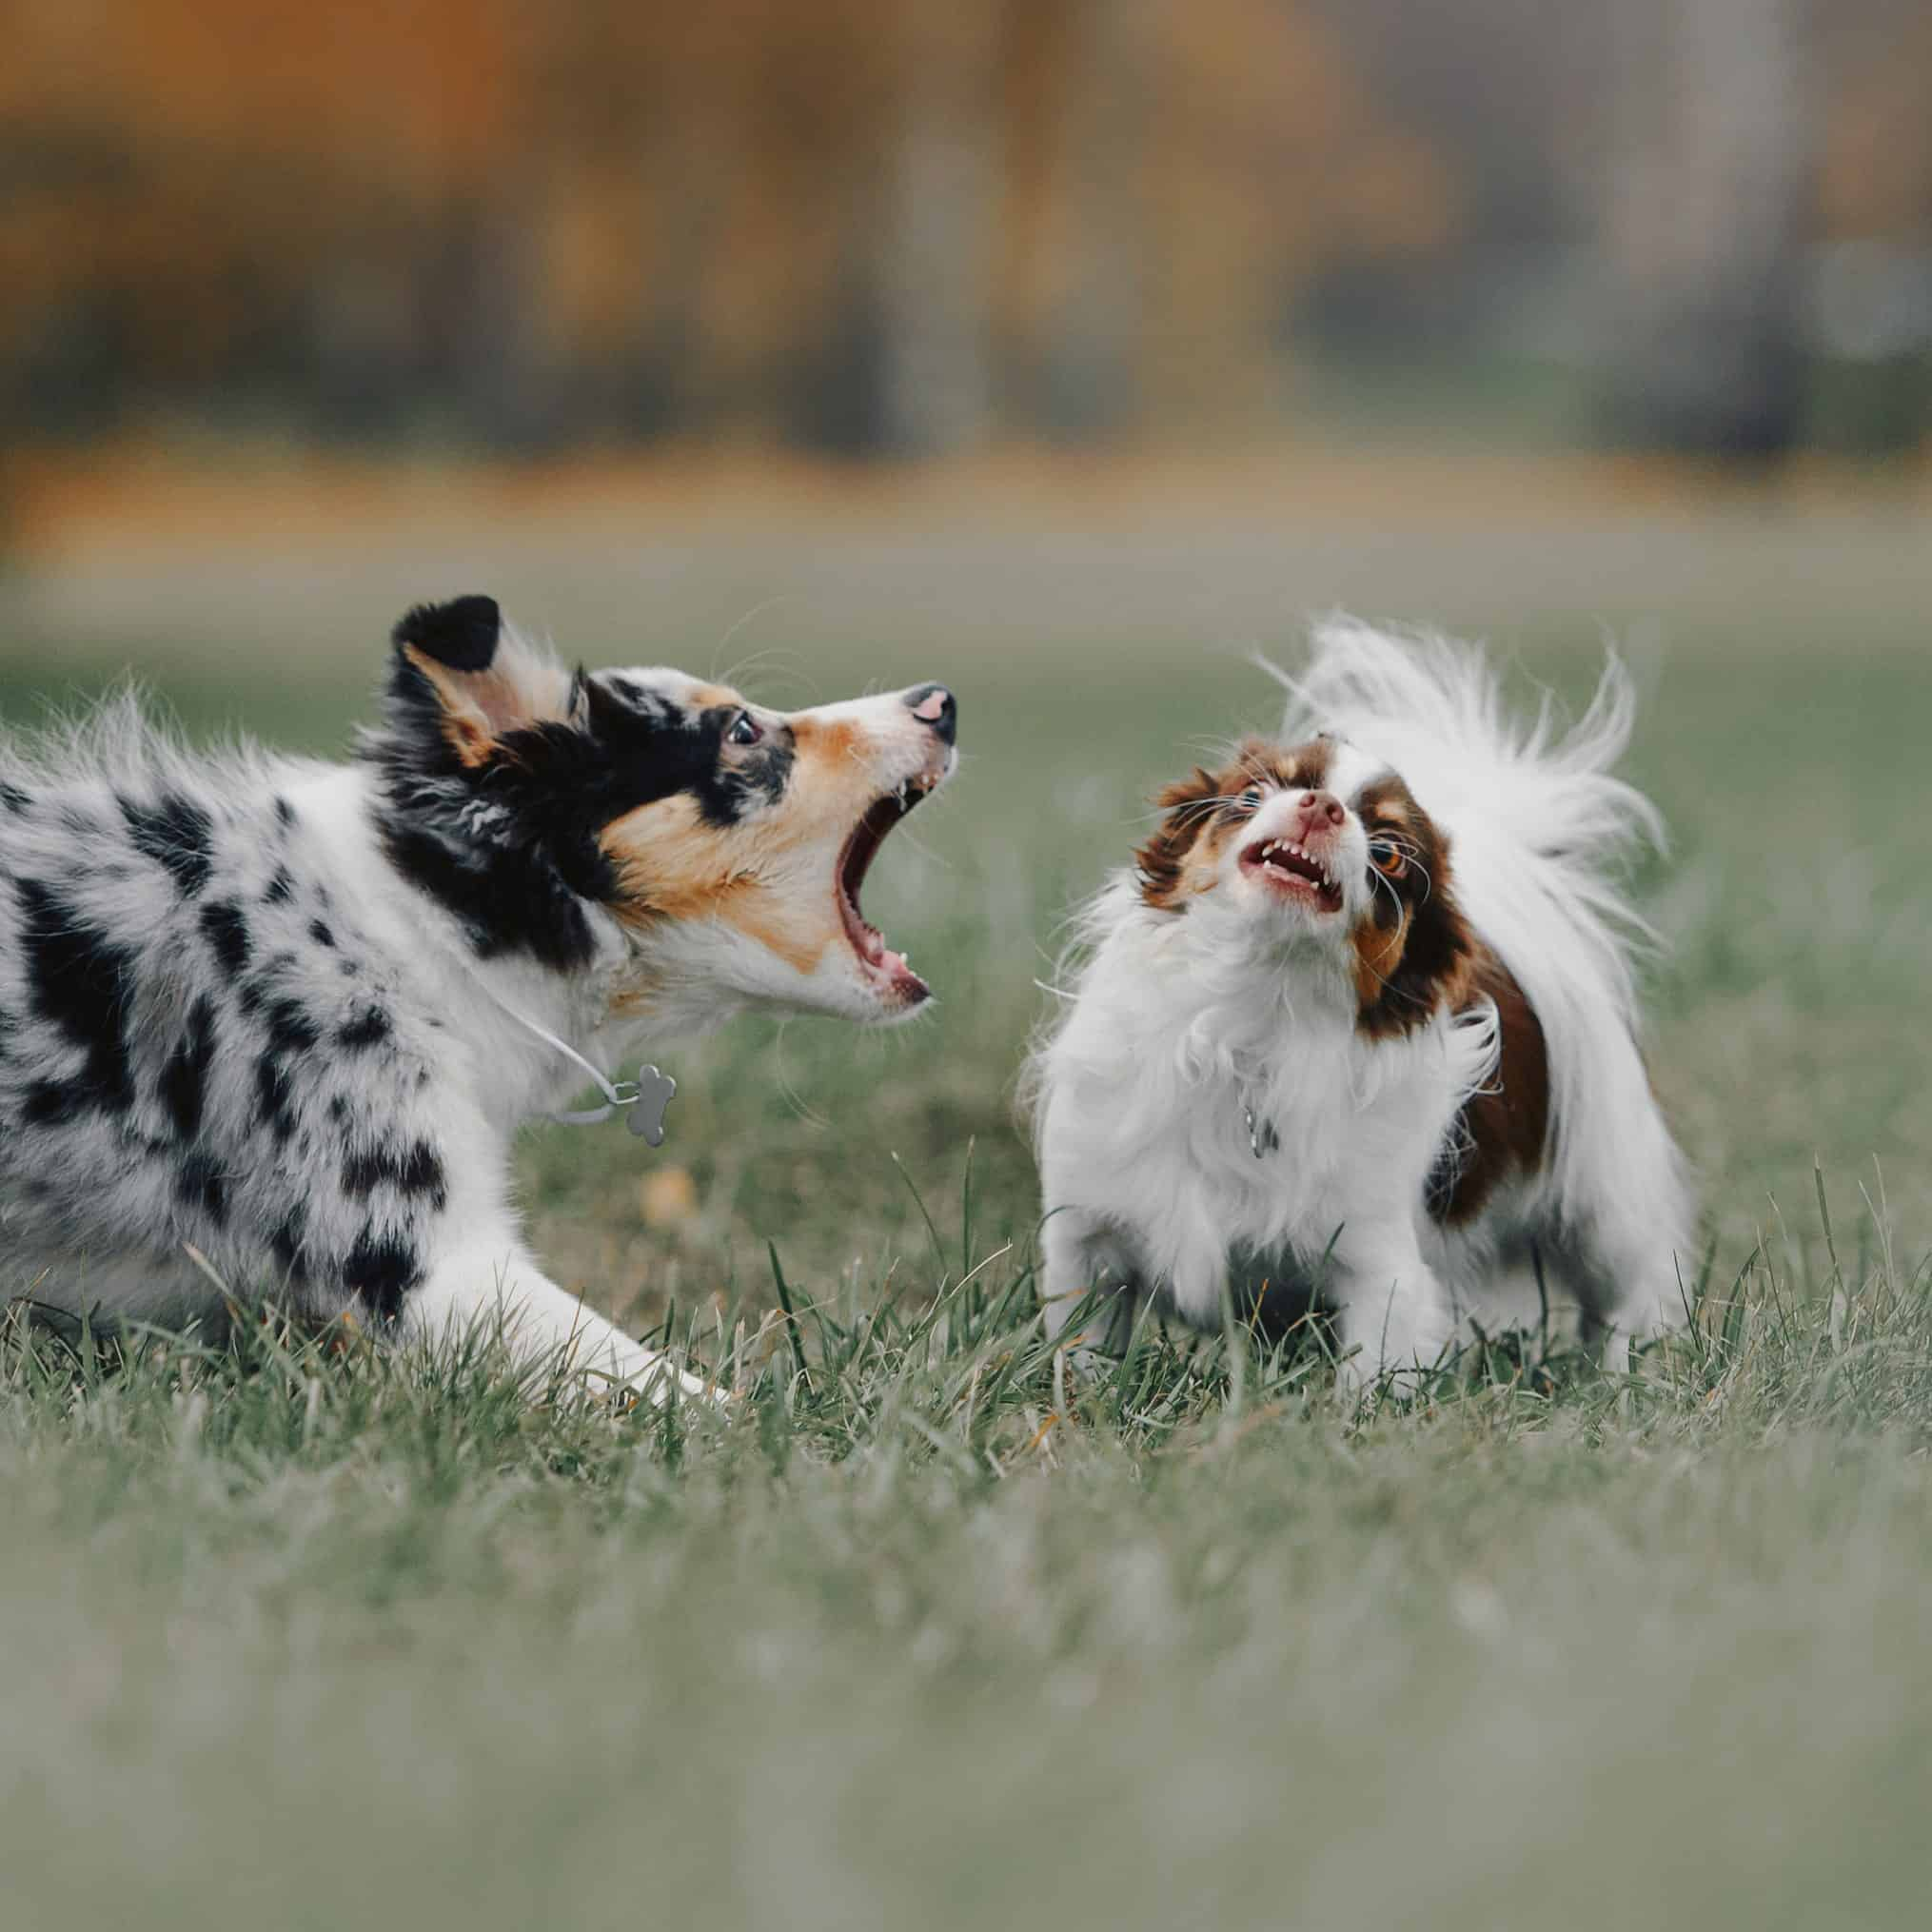 Aggressive Australian Shepherd puppy barks at a smaller dog. Often puppy fear can become puppy aggression. Positive reinforcement, punishment-free obedience training is one way to create a well-behaved, well-mannered dog and prevent fear aggression in puppies.